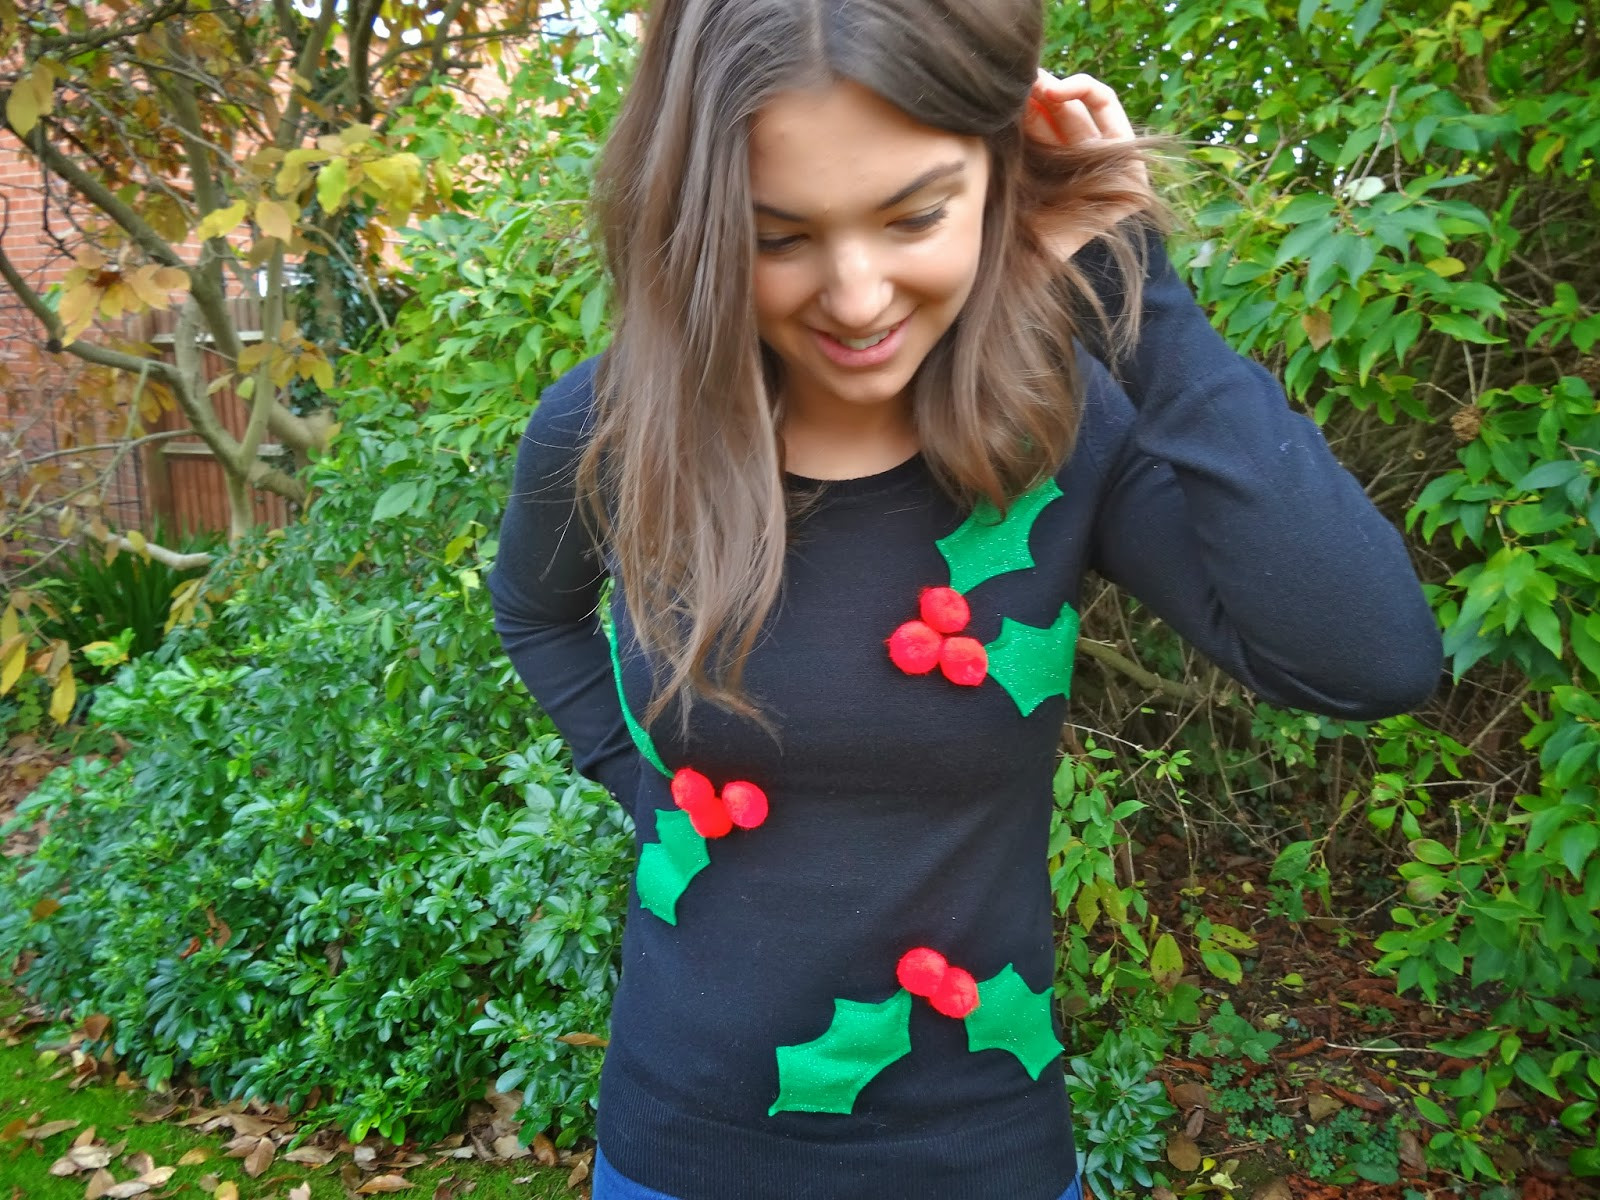 Best ideas about DIY Christmas Jumper . Save or Pin Trends With Benefits DIY Christmas Jumper Now.